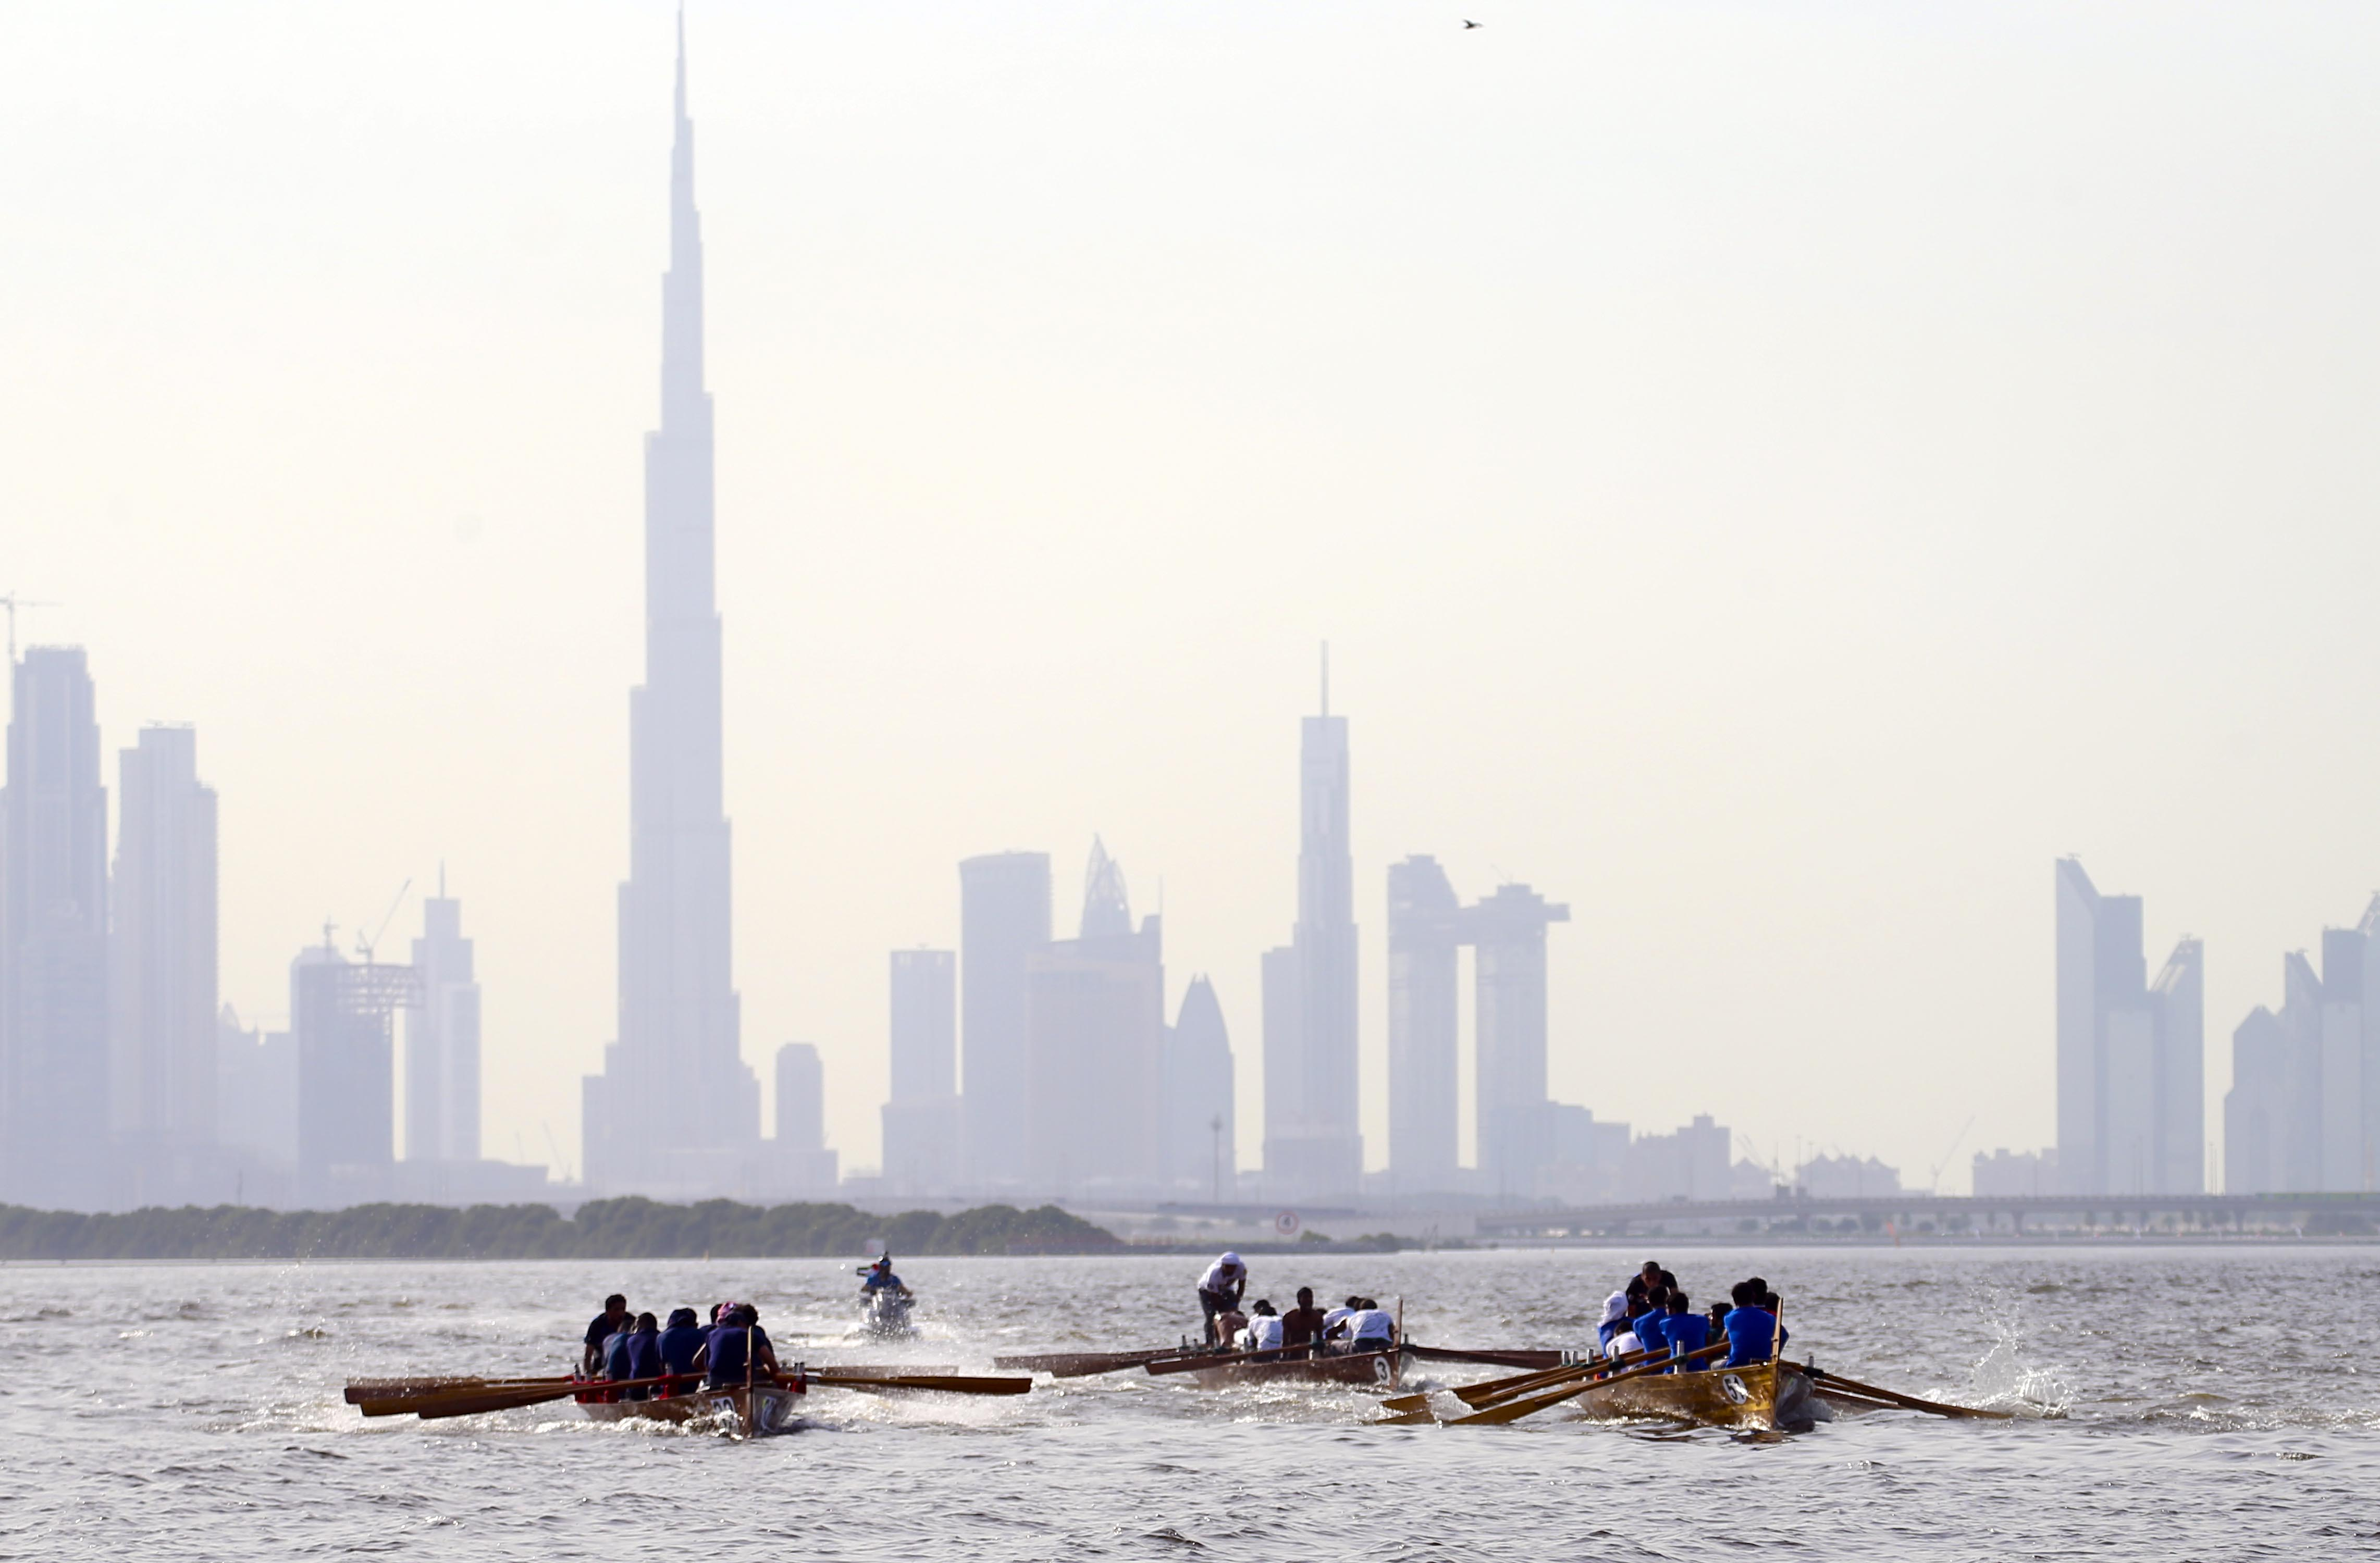 First Round of the Dubai Traditional Rowing Race on Friday